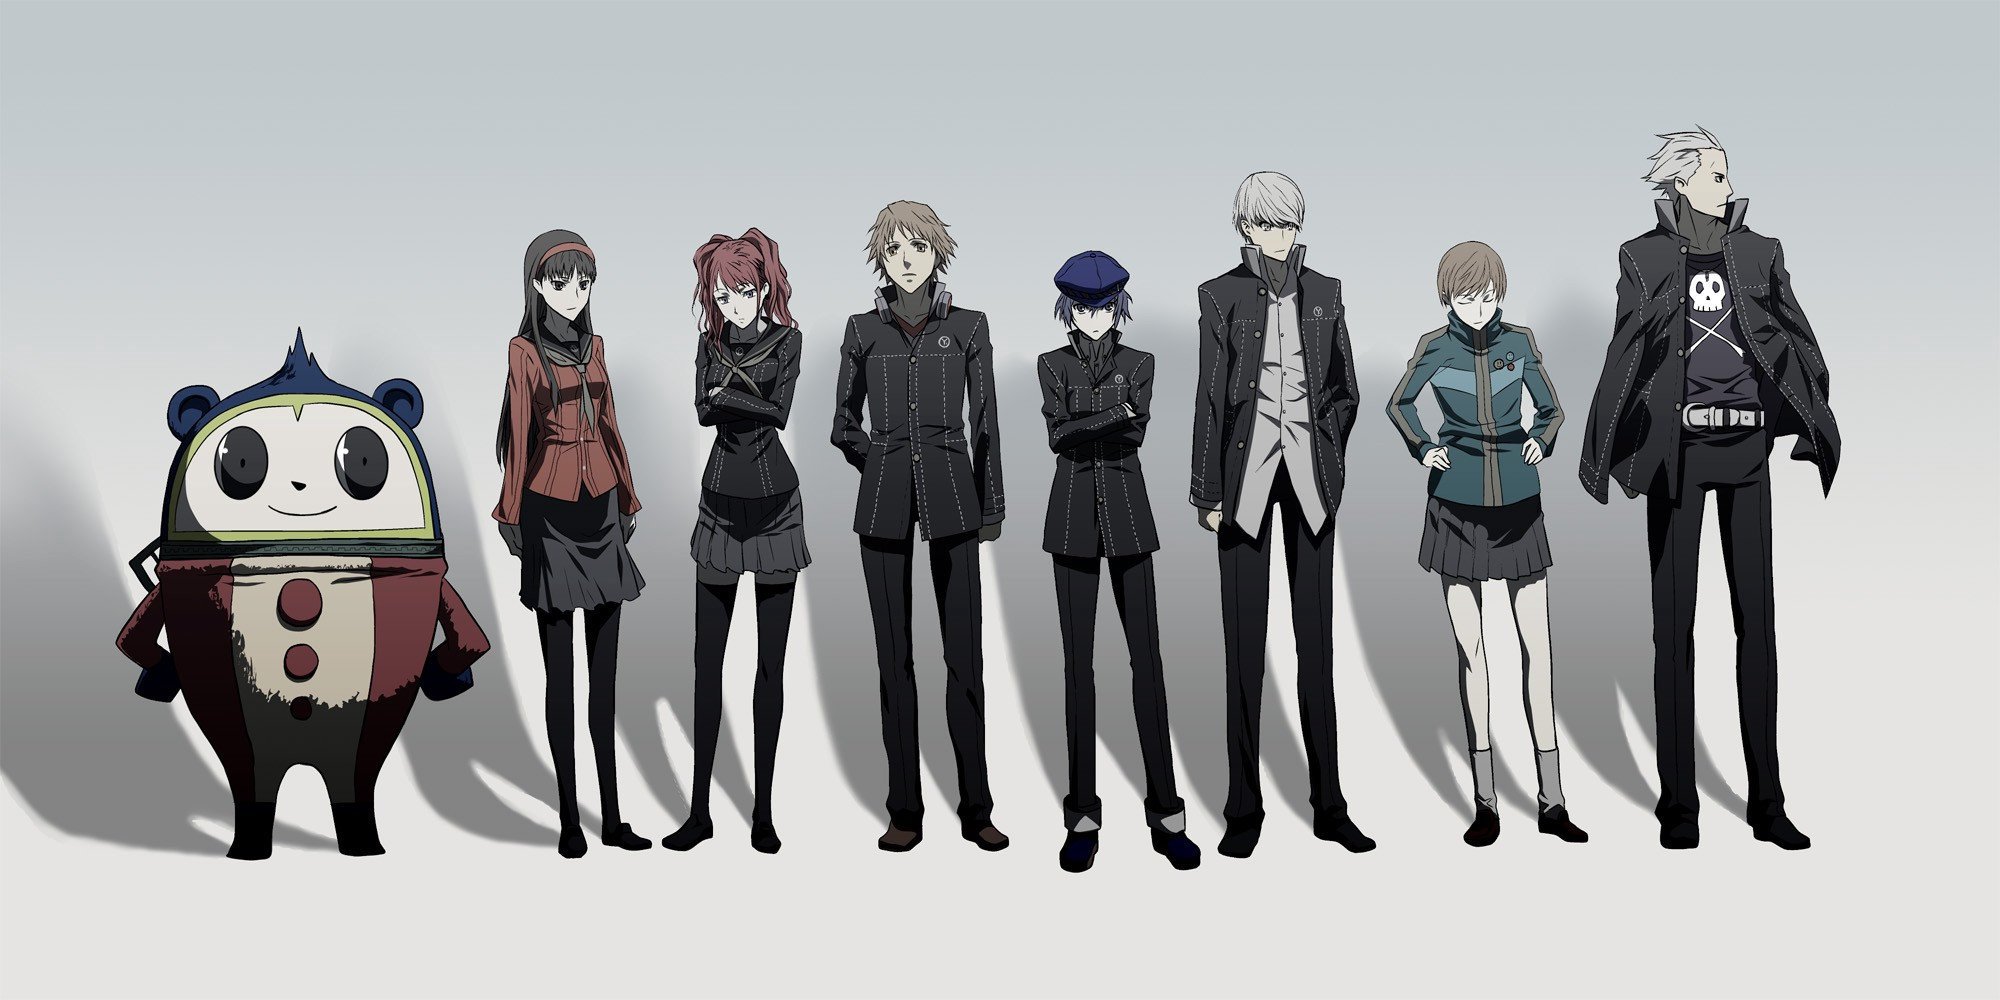 Persona asexual marriage